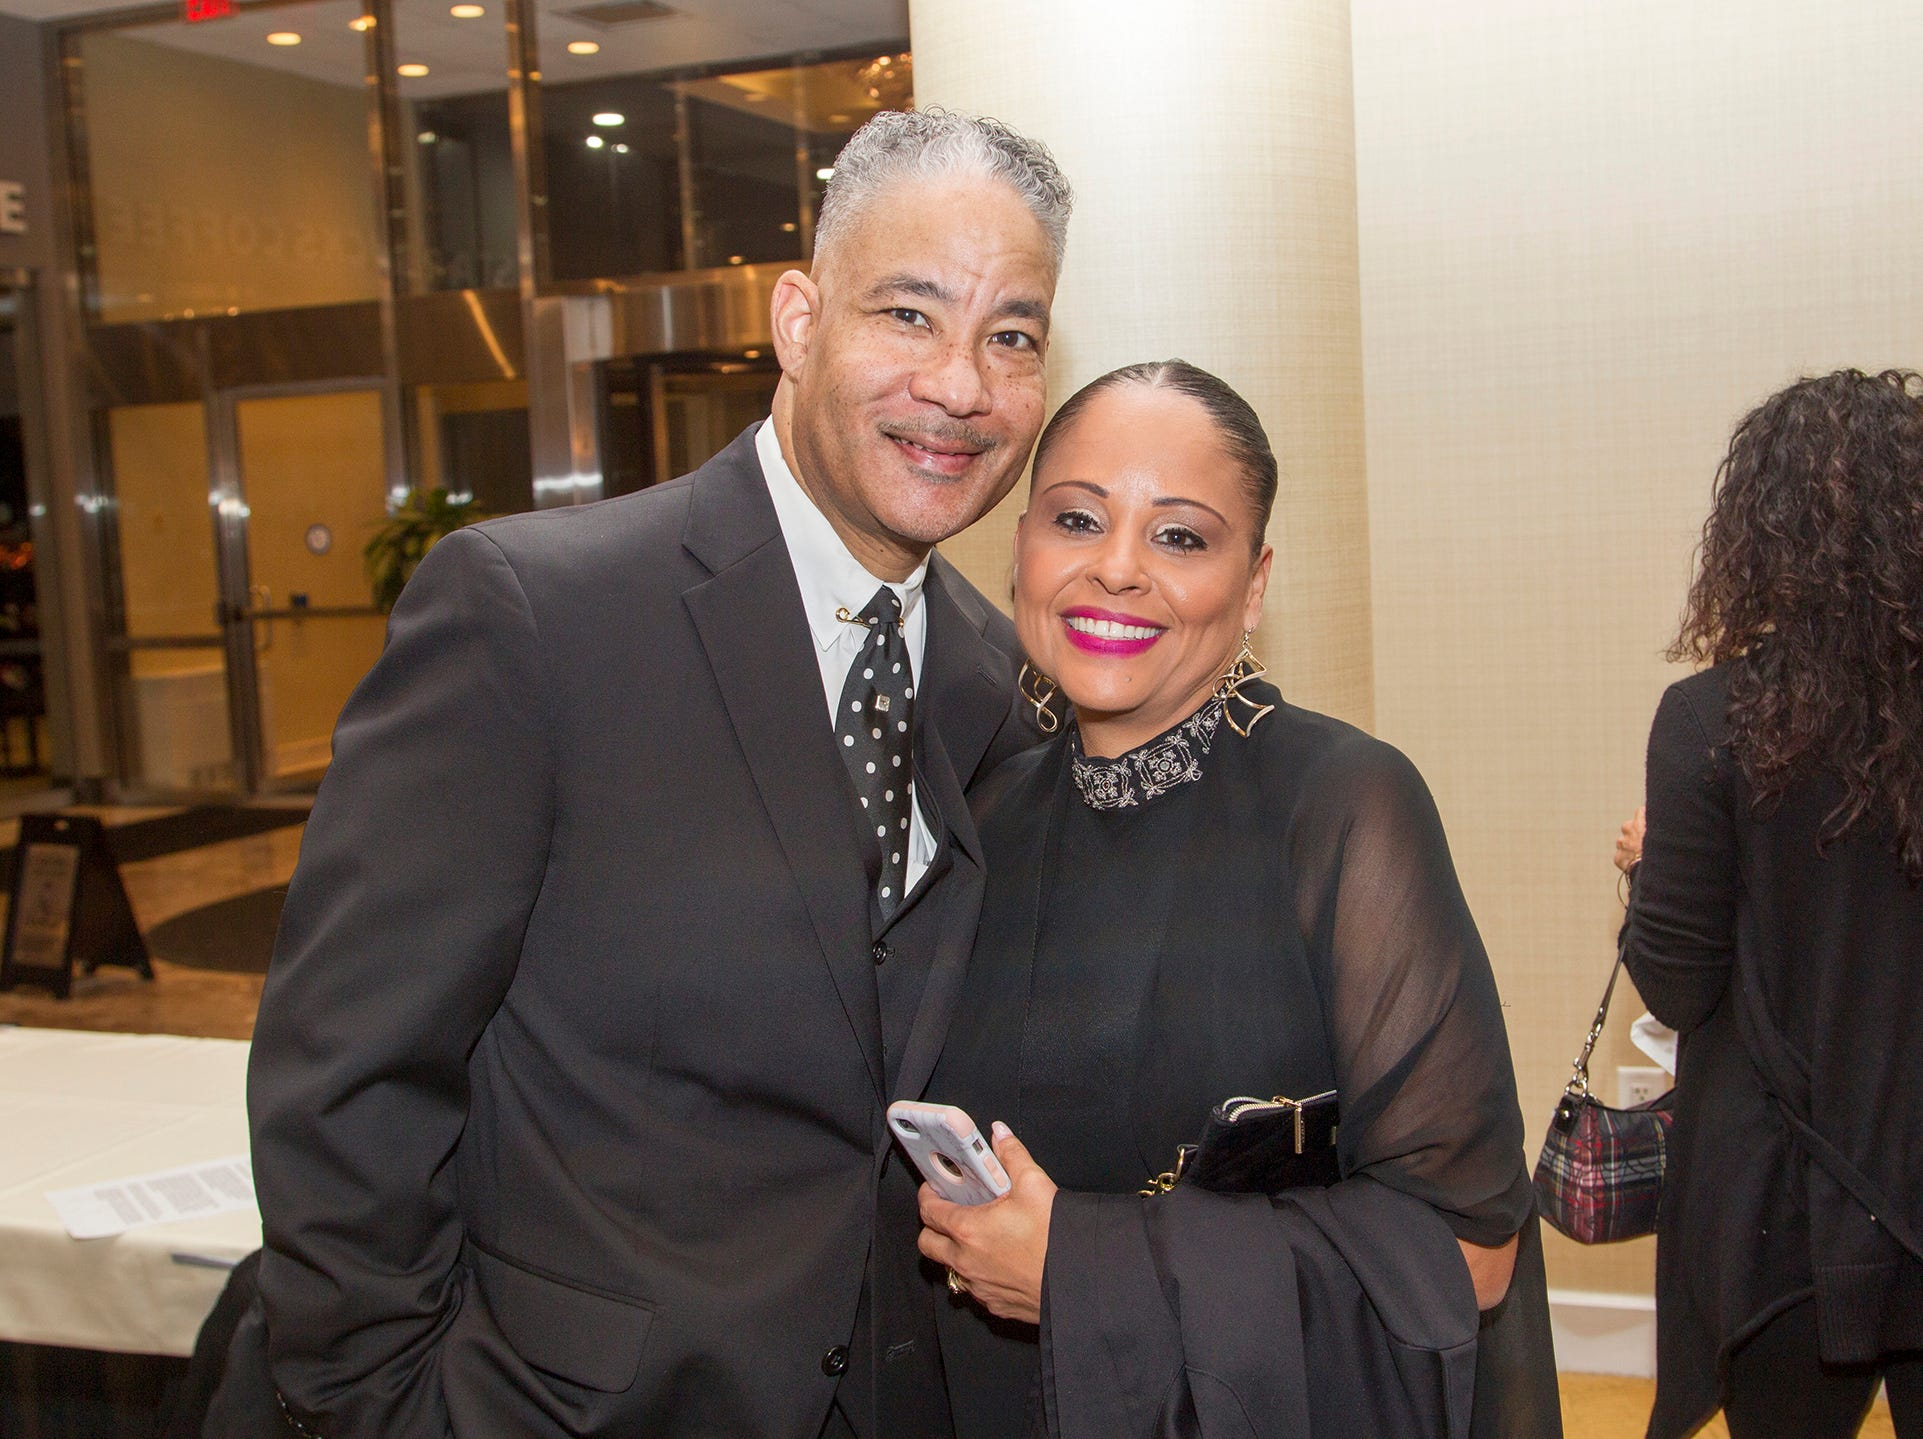 Jeff and Kim Fowlkes. Jessie Banks Foundation holds 16th annual Scholarship Awards Gala in Teaneck. 11/09/2018